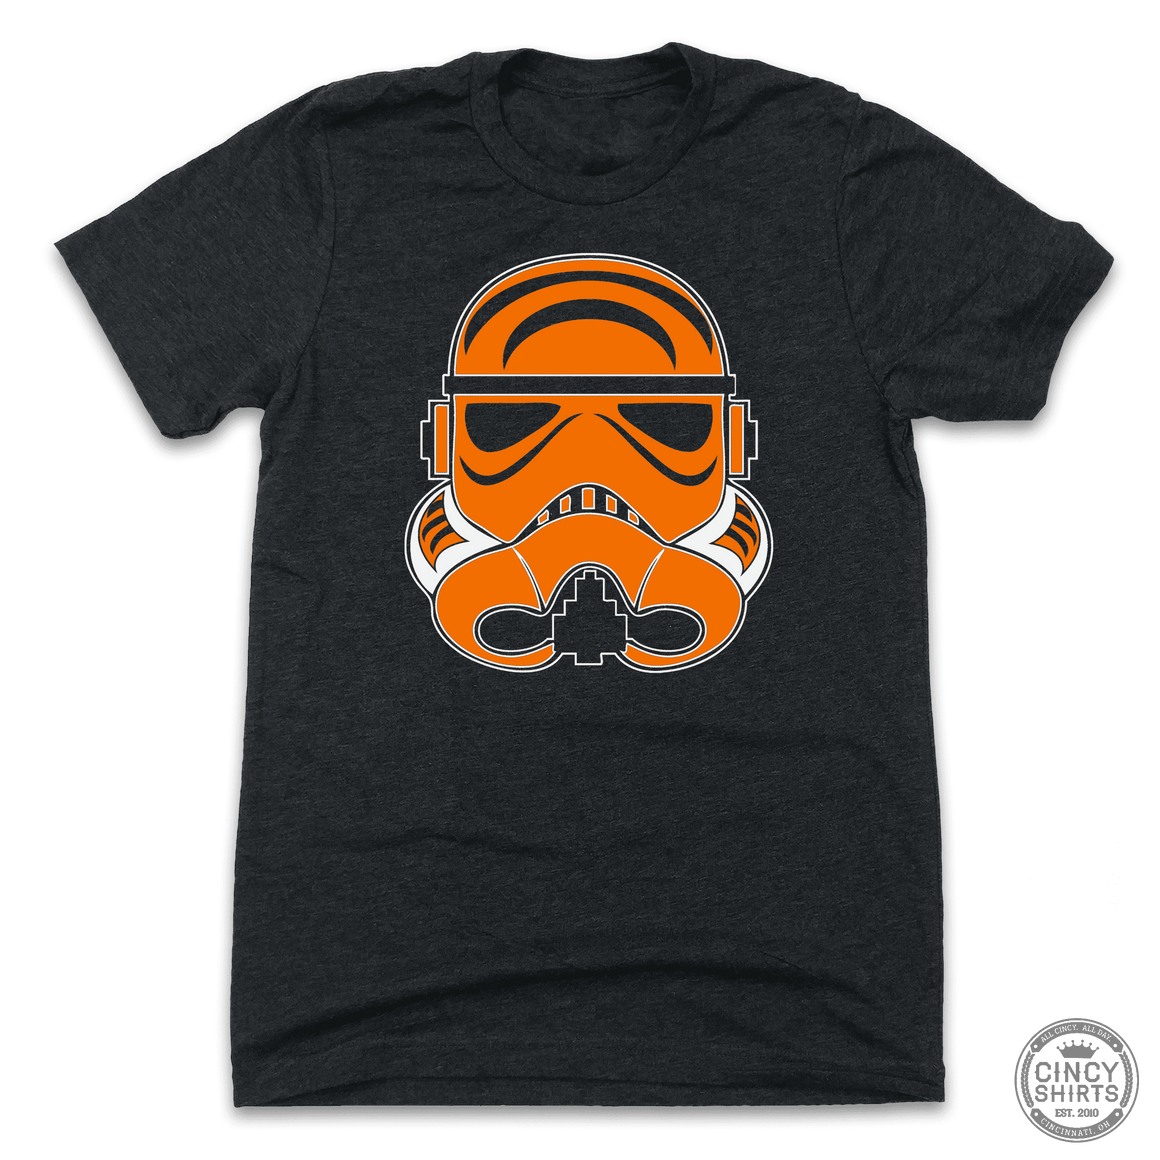 Cincy Football Trooper - Cincy Shirts